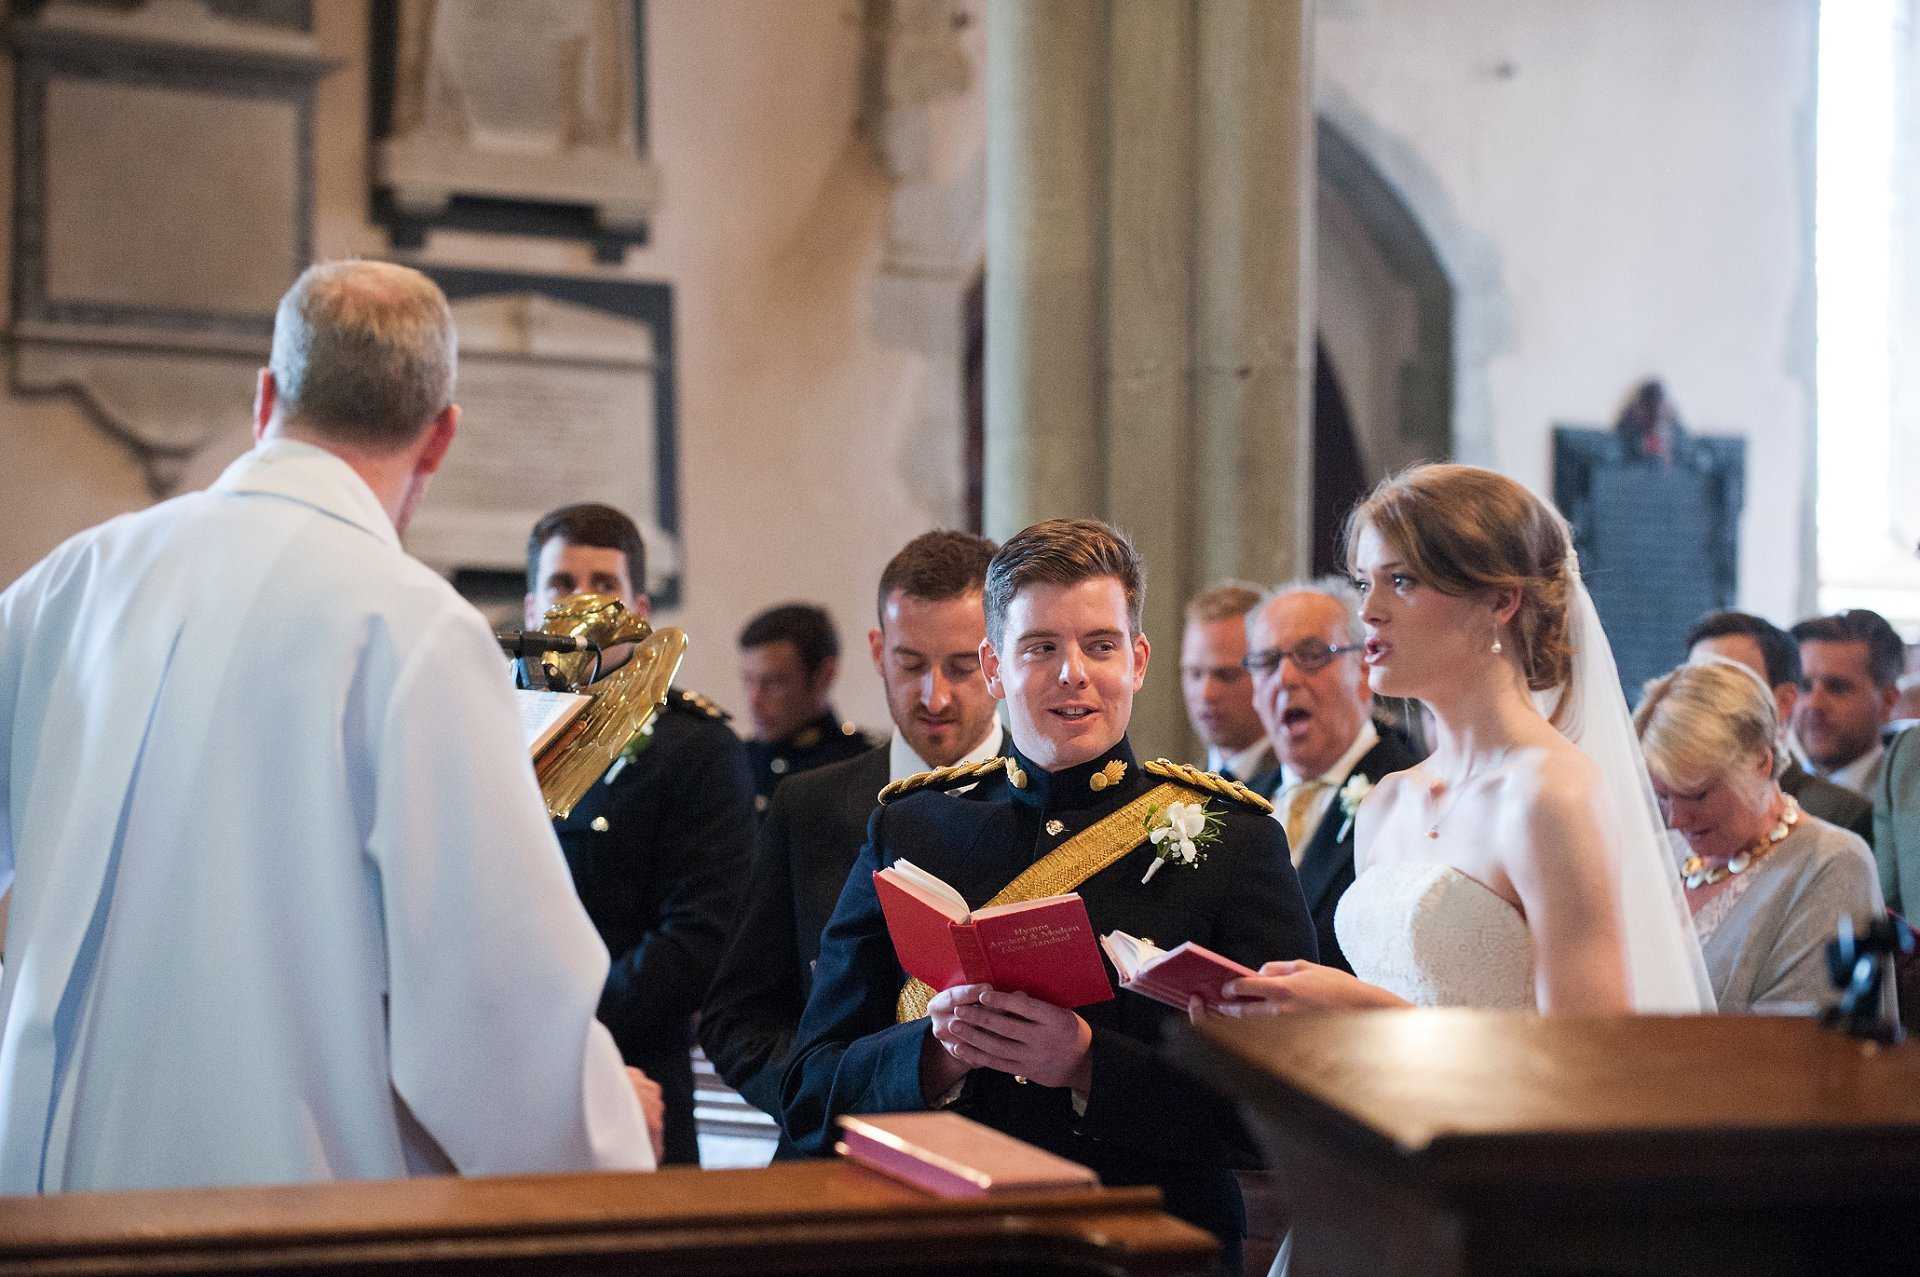 Groom takes a look at his bride during a hymn in St Mary's Westerham